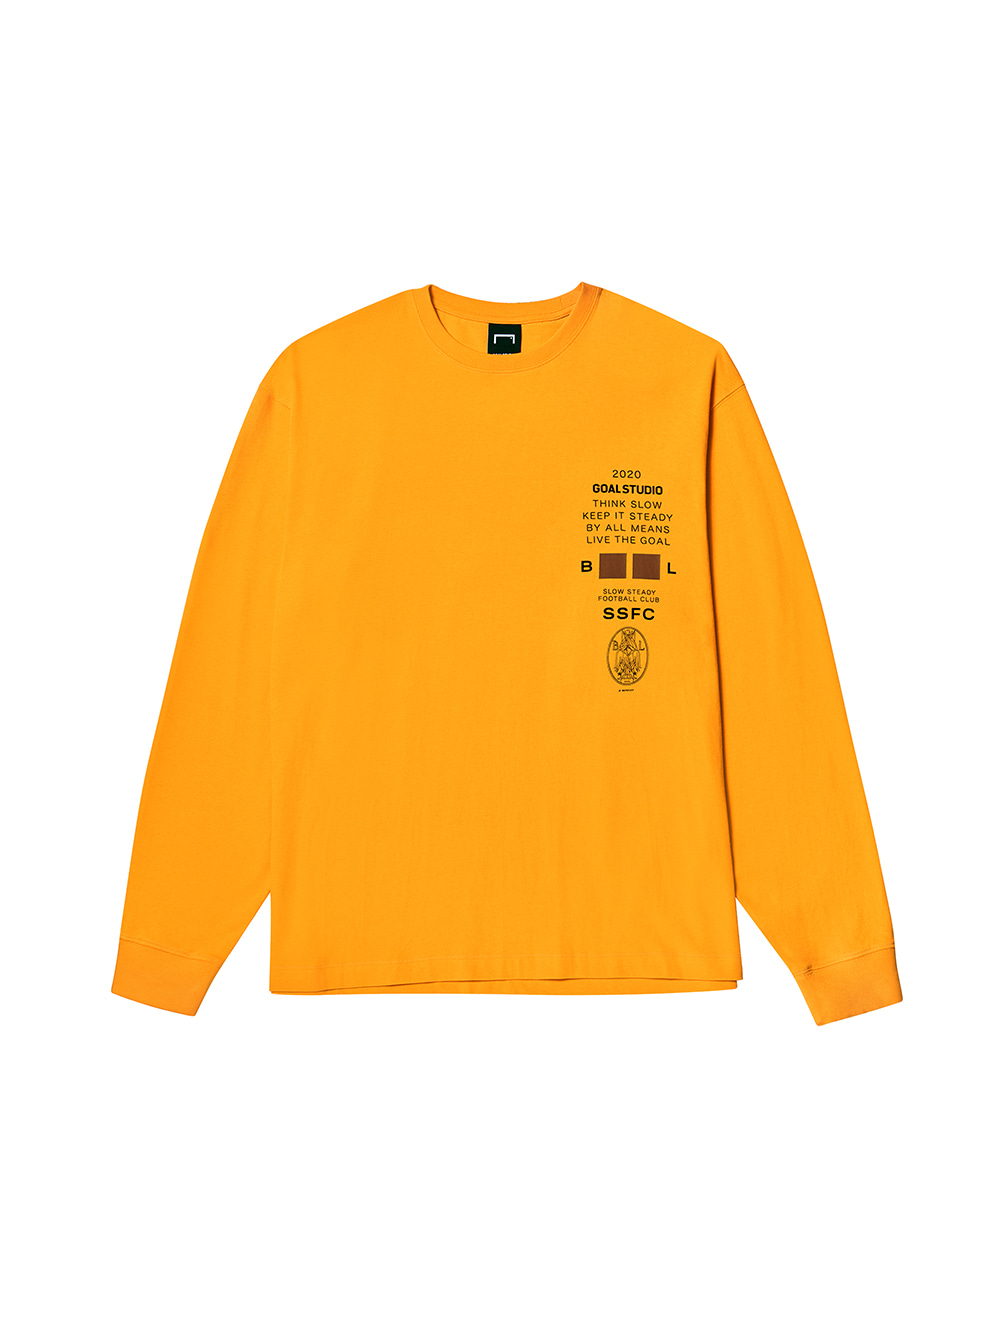 SSFC JERSEY SINGLE LONG SLEEVE - YELLOW